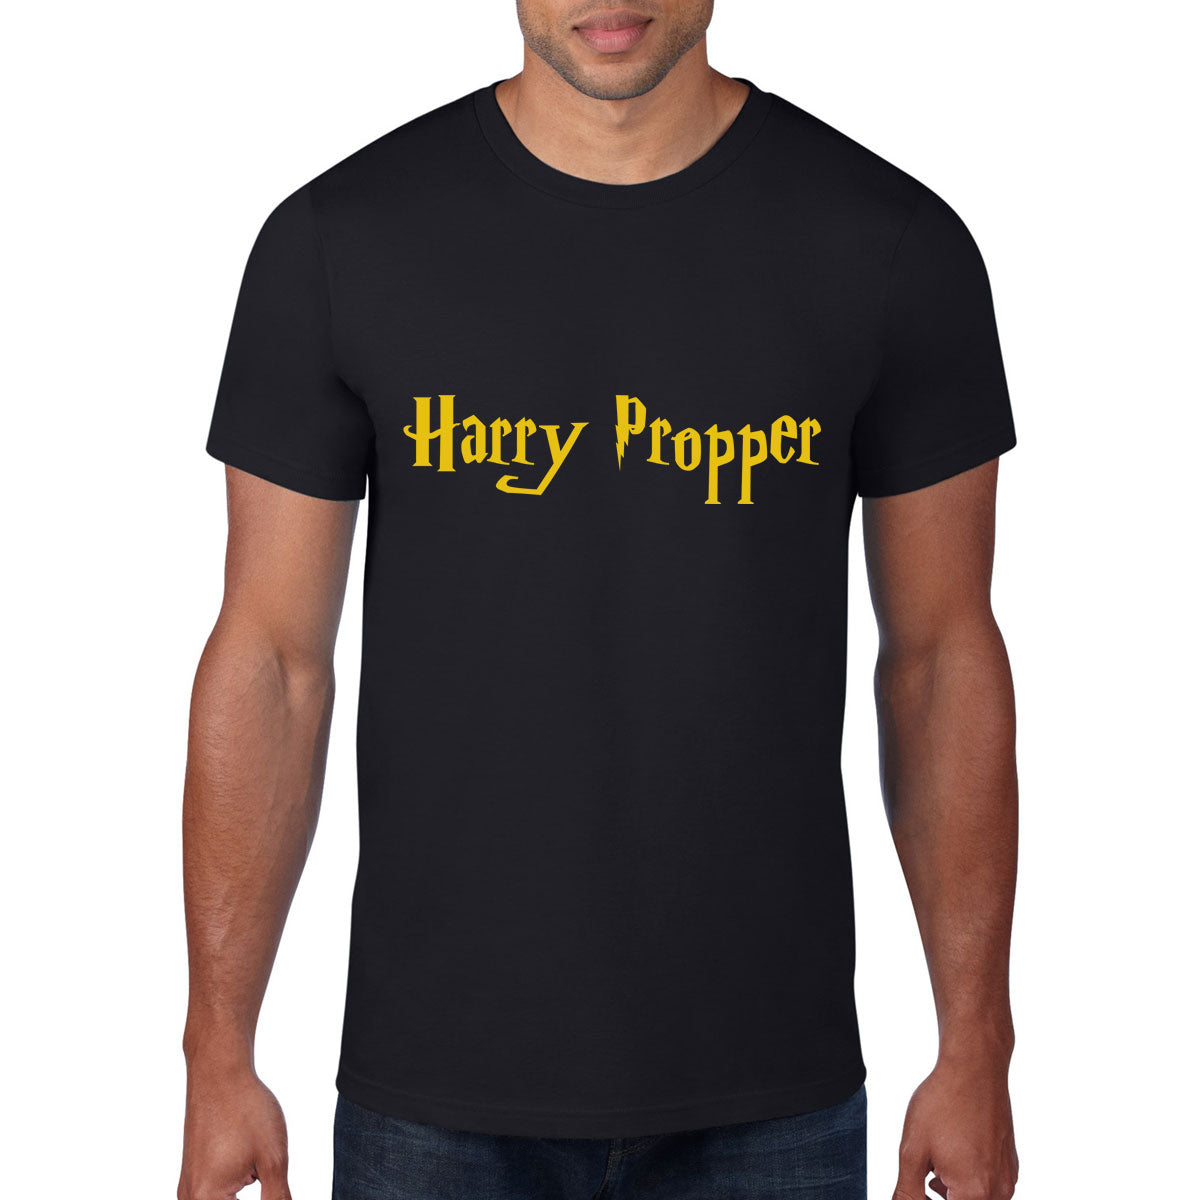 Harry Propper Rugby Tee - First XV rugbystuff.com